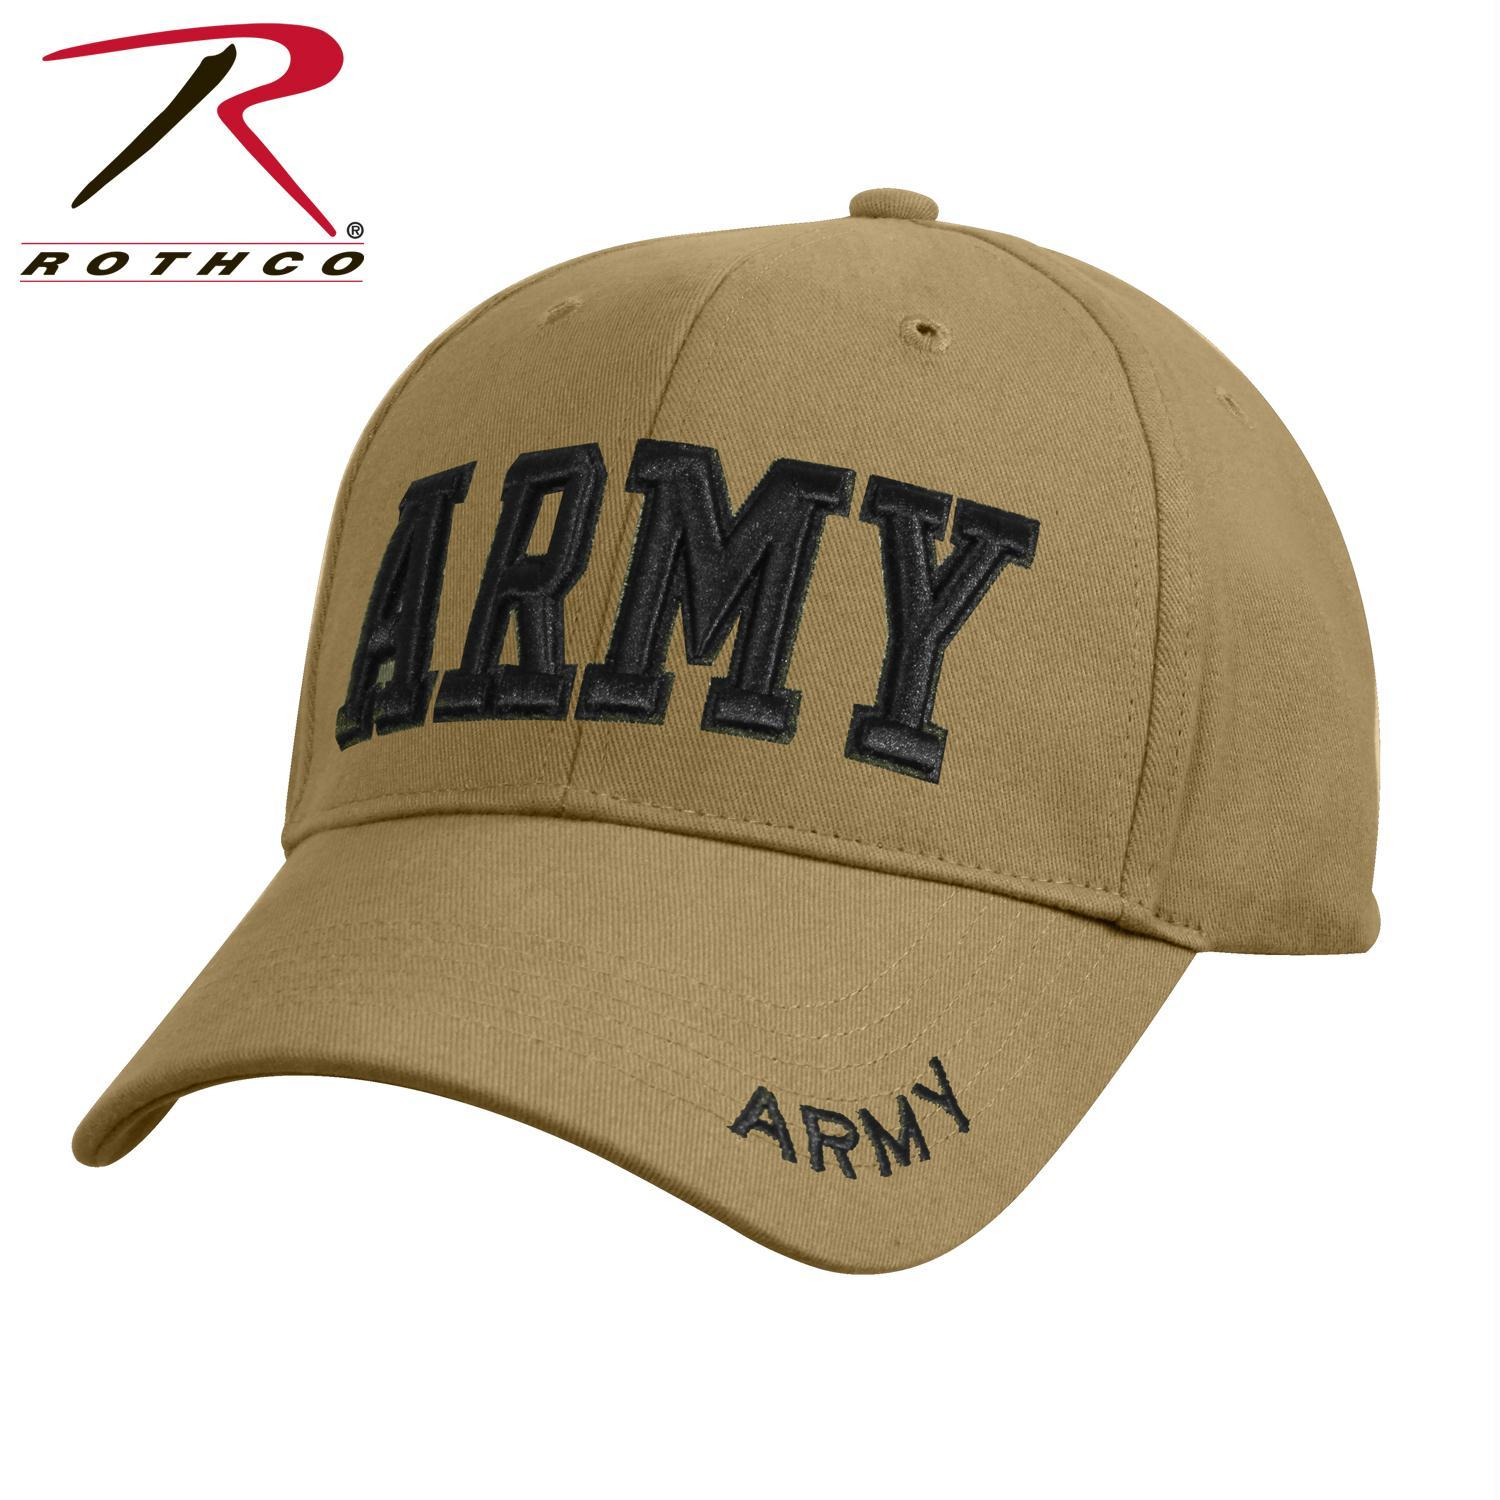 ff42b2d25ae Rothco Deluxe Army Embroidered Low Profile Insignia Cap in 2018 ...